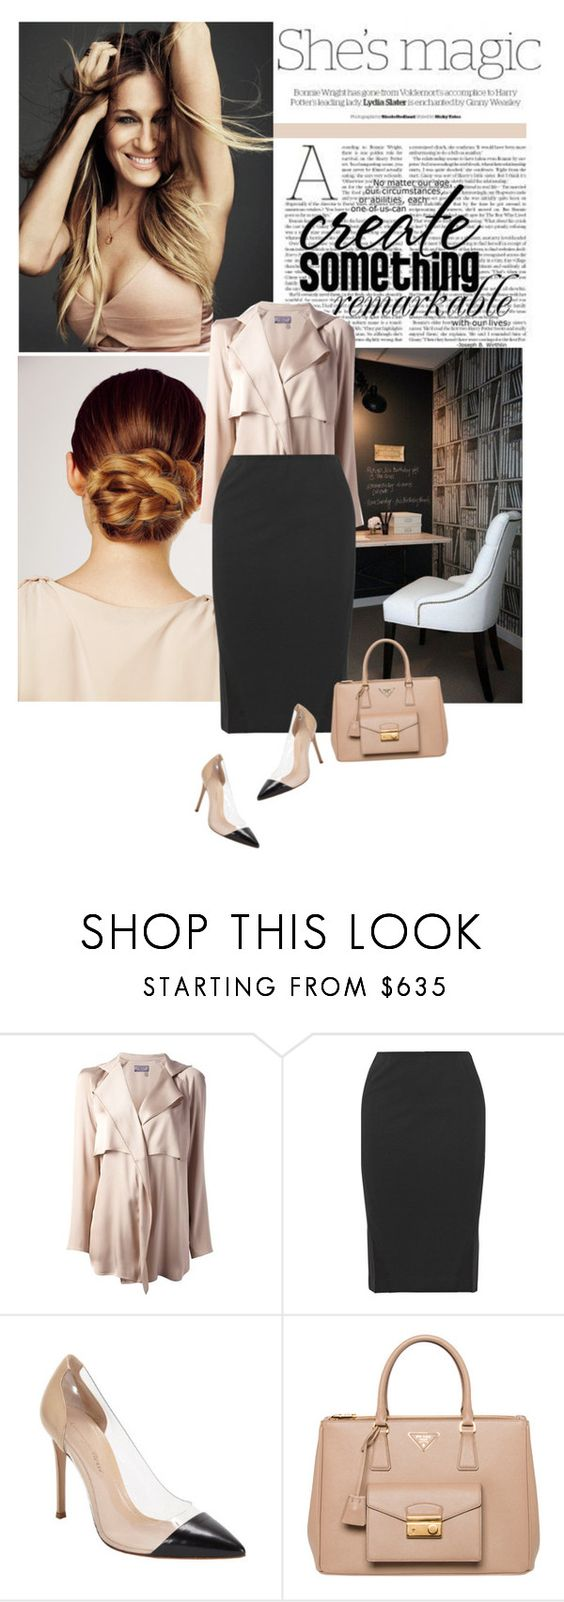 Office Hours by ldtrollinger on Polyvore featuring ファッション, Lanvin, Donna Karan, Gianvito Rossi, Prada, Sarah Jessica Parker, Nicole and Kerastase